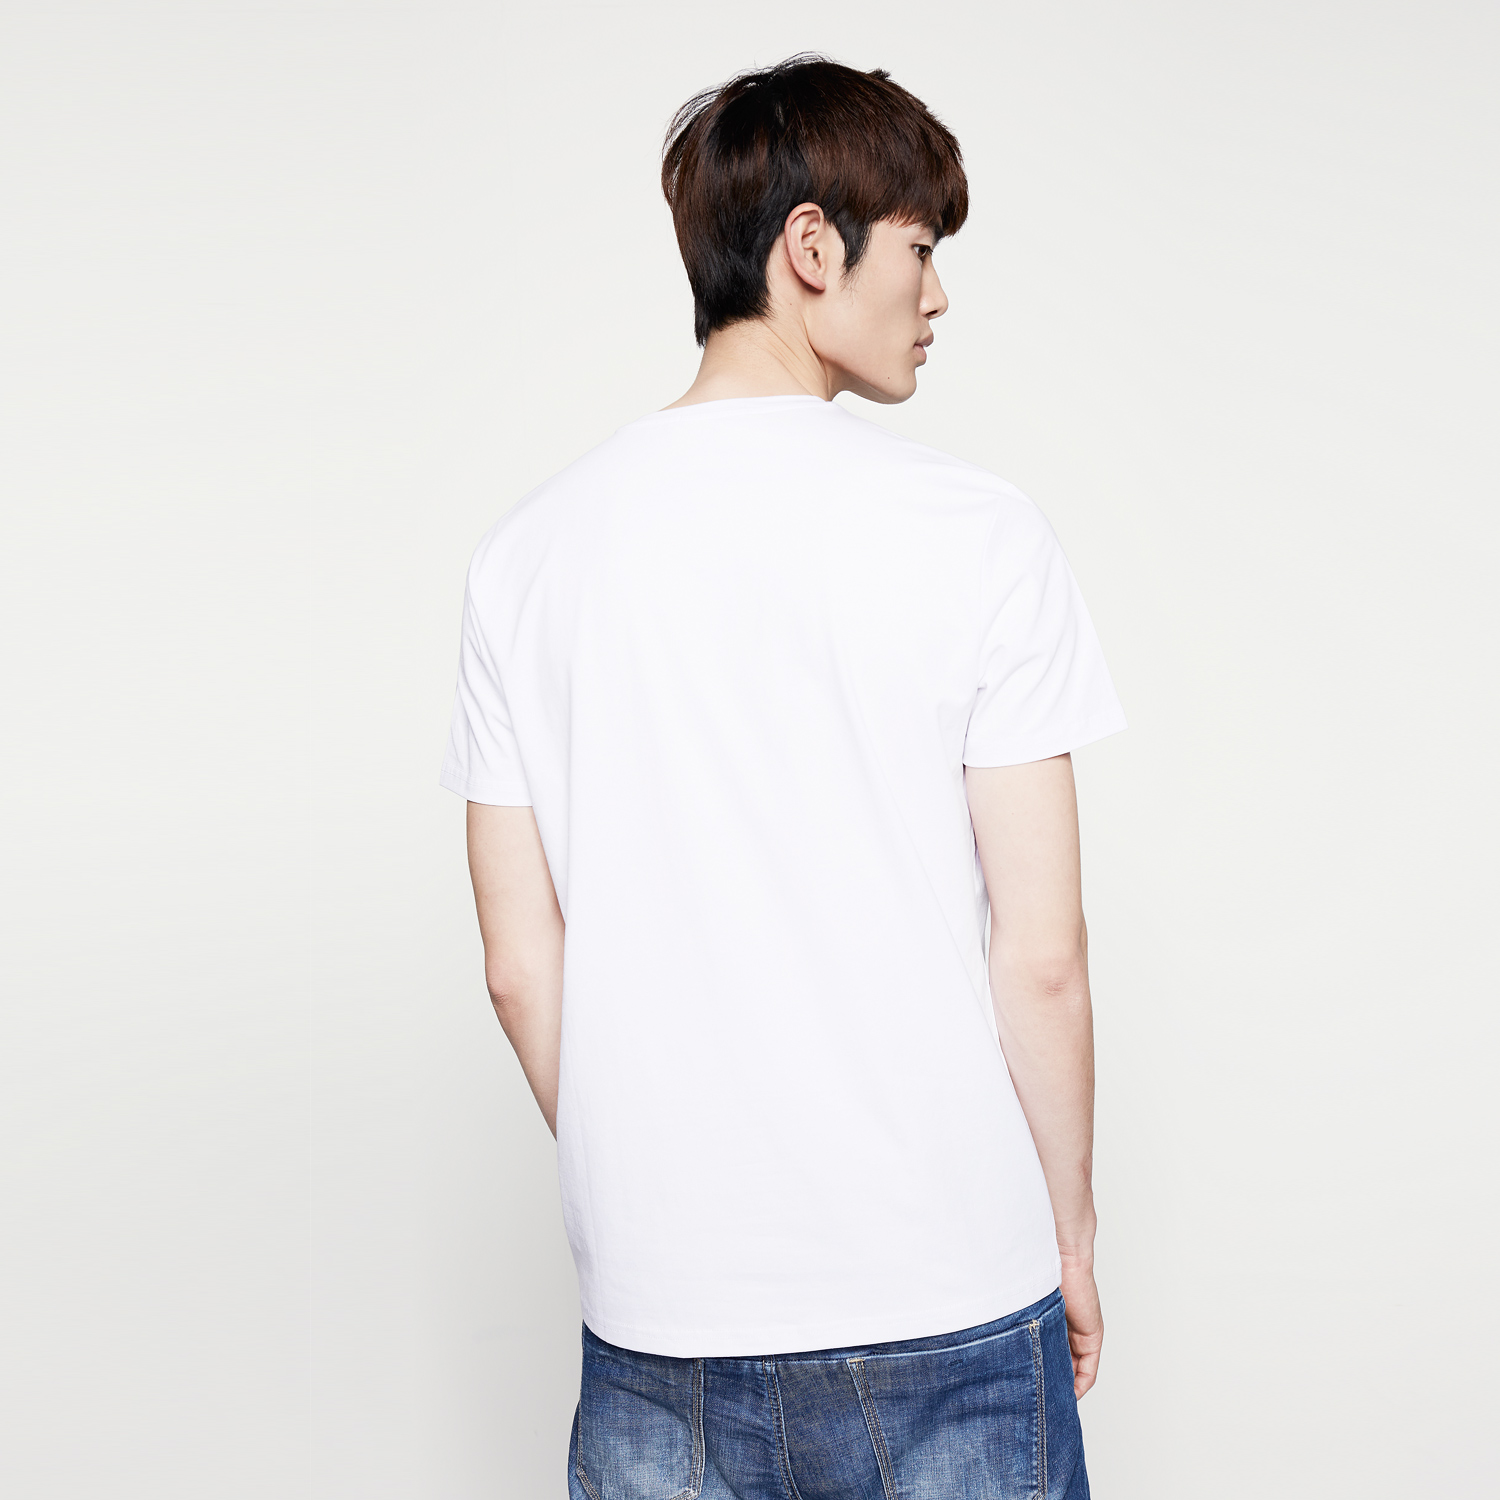 Usd hla heilan home round neck printing short for 24 t shirt printing